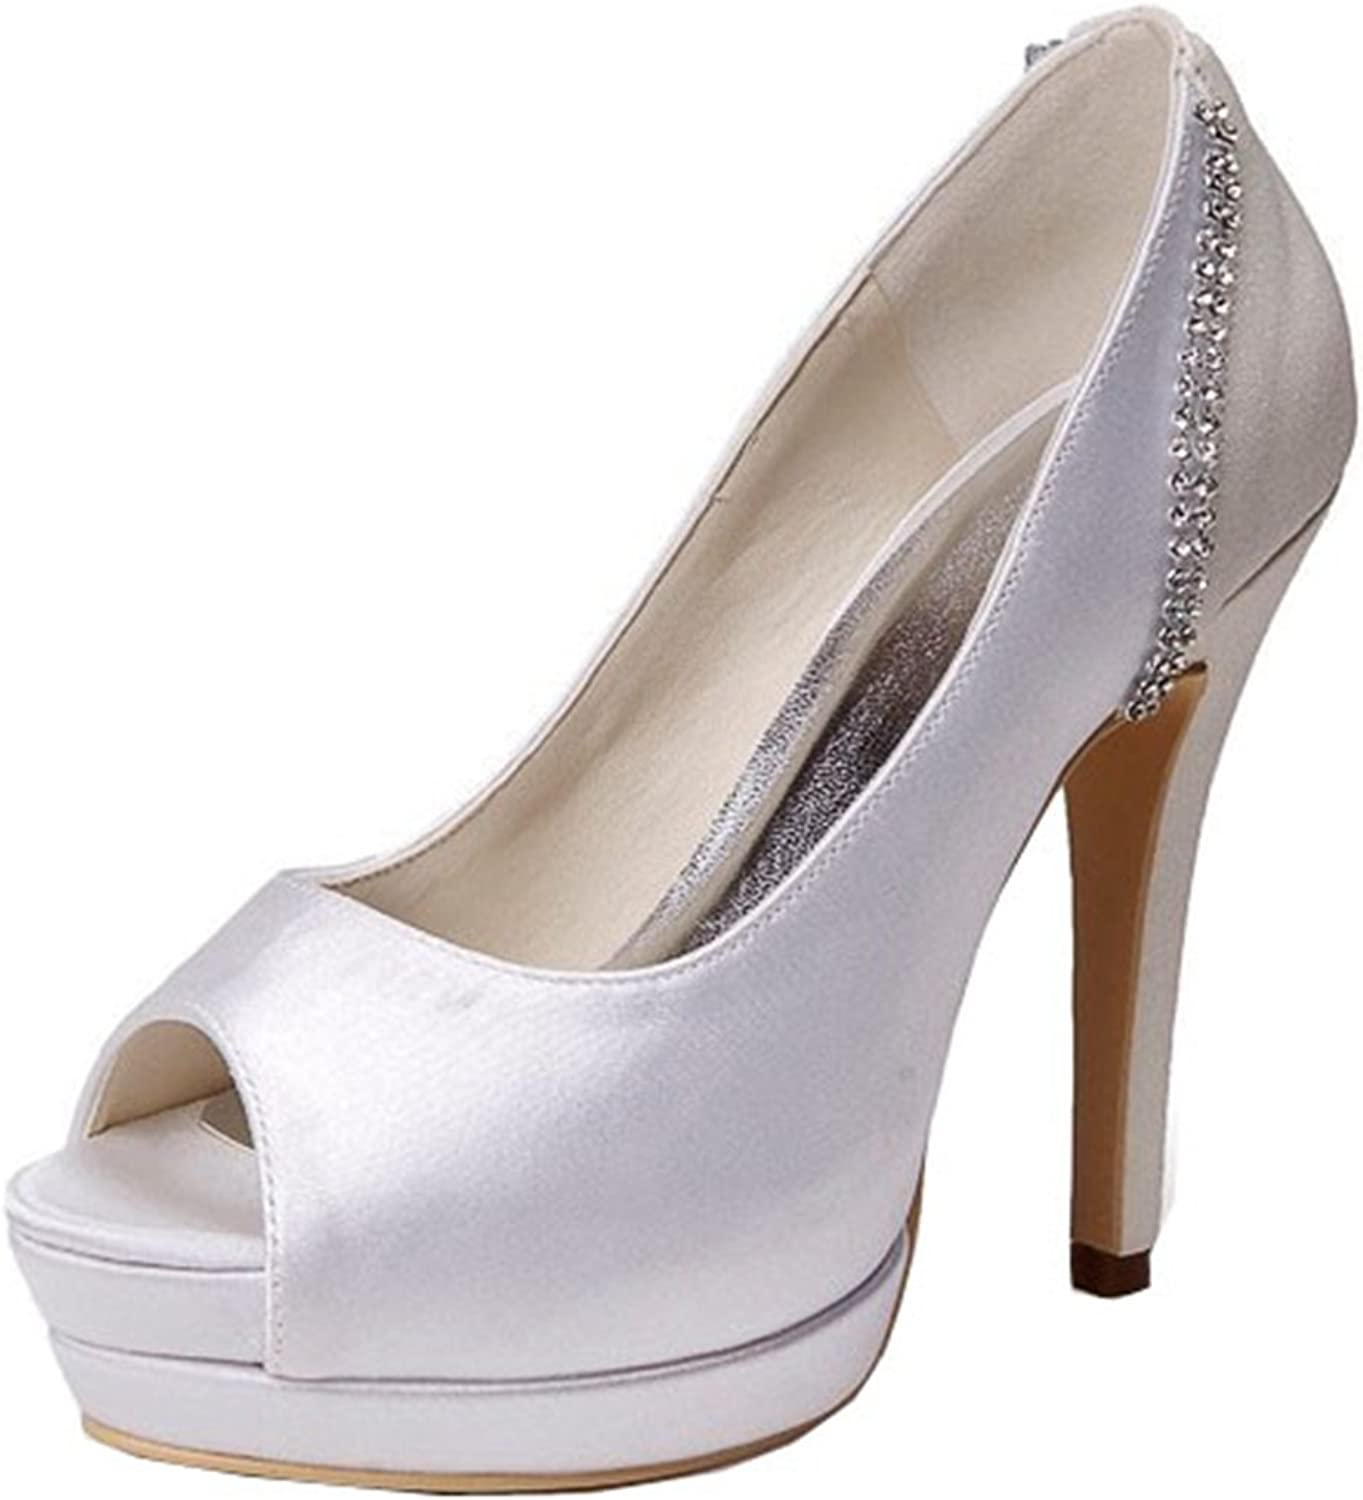 Minishion GYMZ660 Womens High Heel Satin Evening Party Bridal Wedding Chain shoes